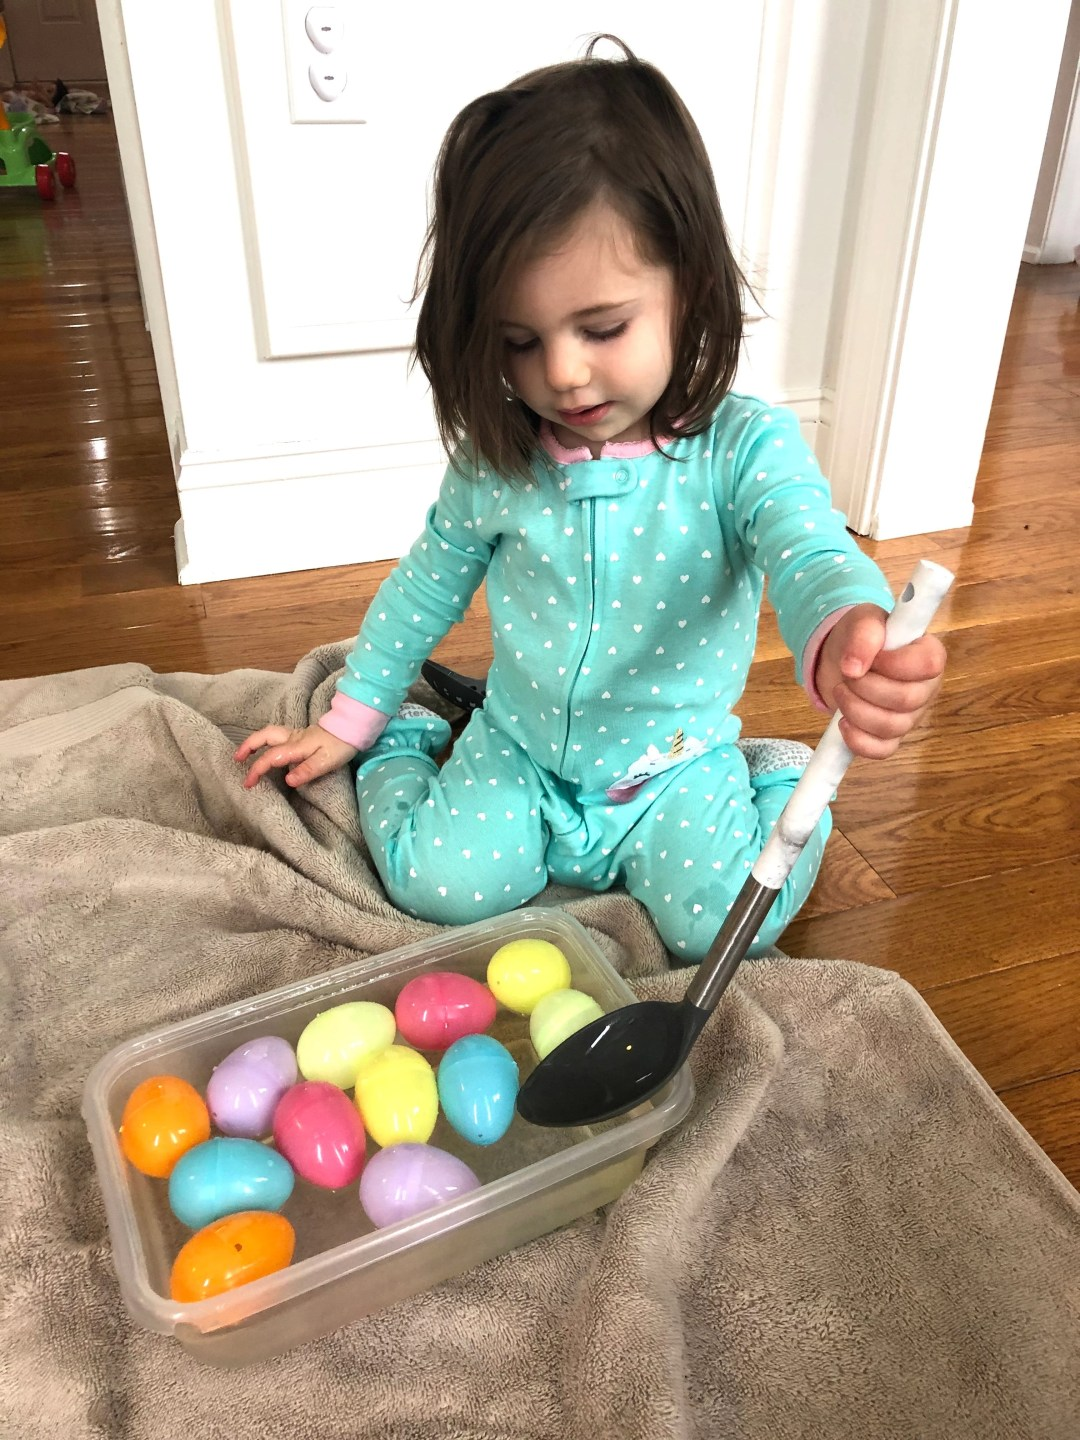 This is a simple and inexpensive Easter activity to do with your baby or toddler. It requires very little set up and common household items and addresses fine motor skills, language, and sensory play.